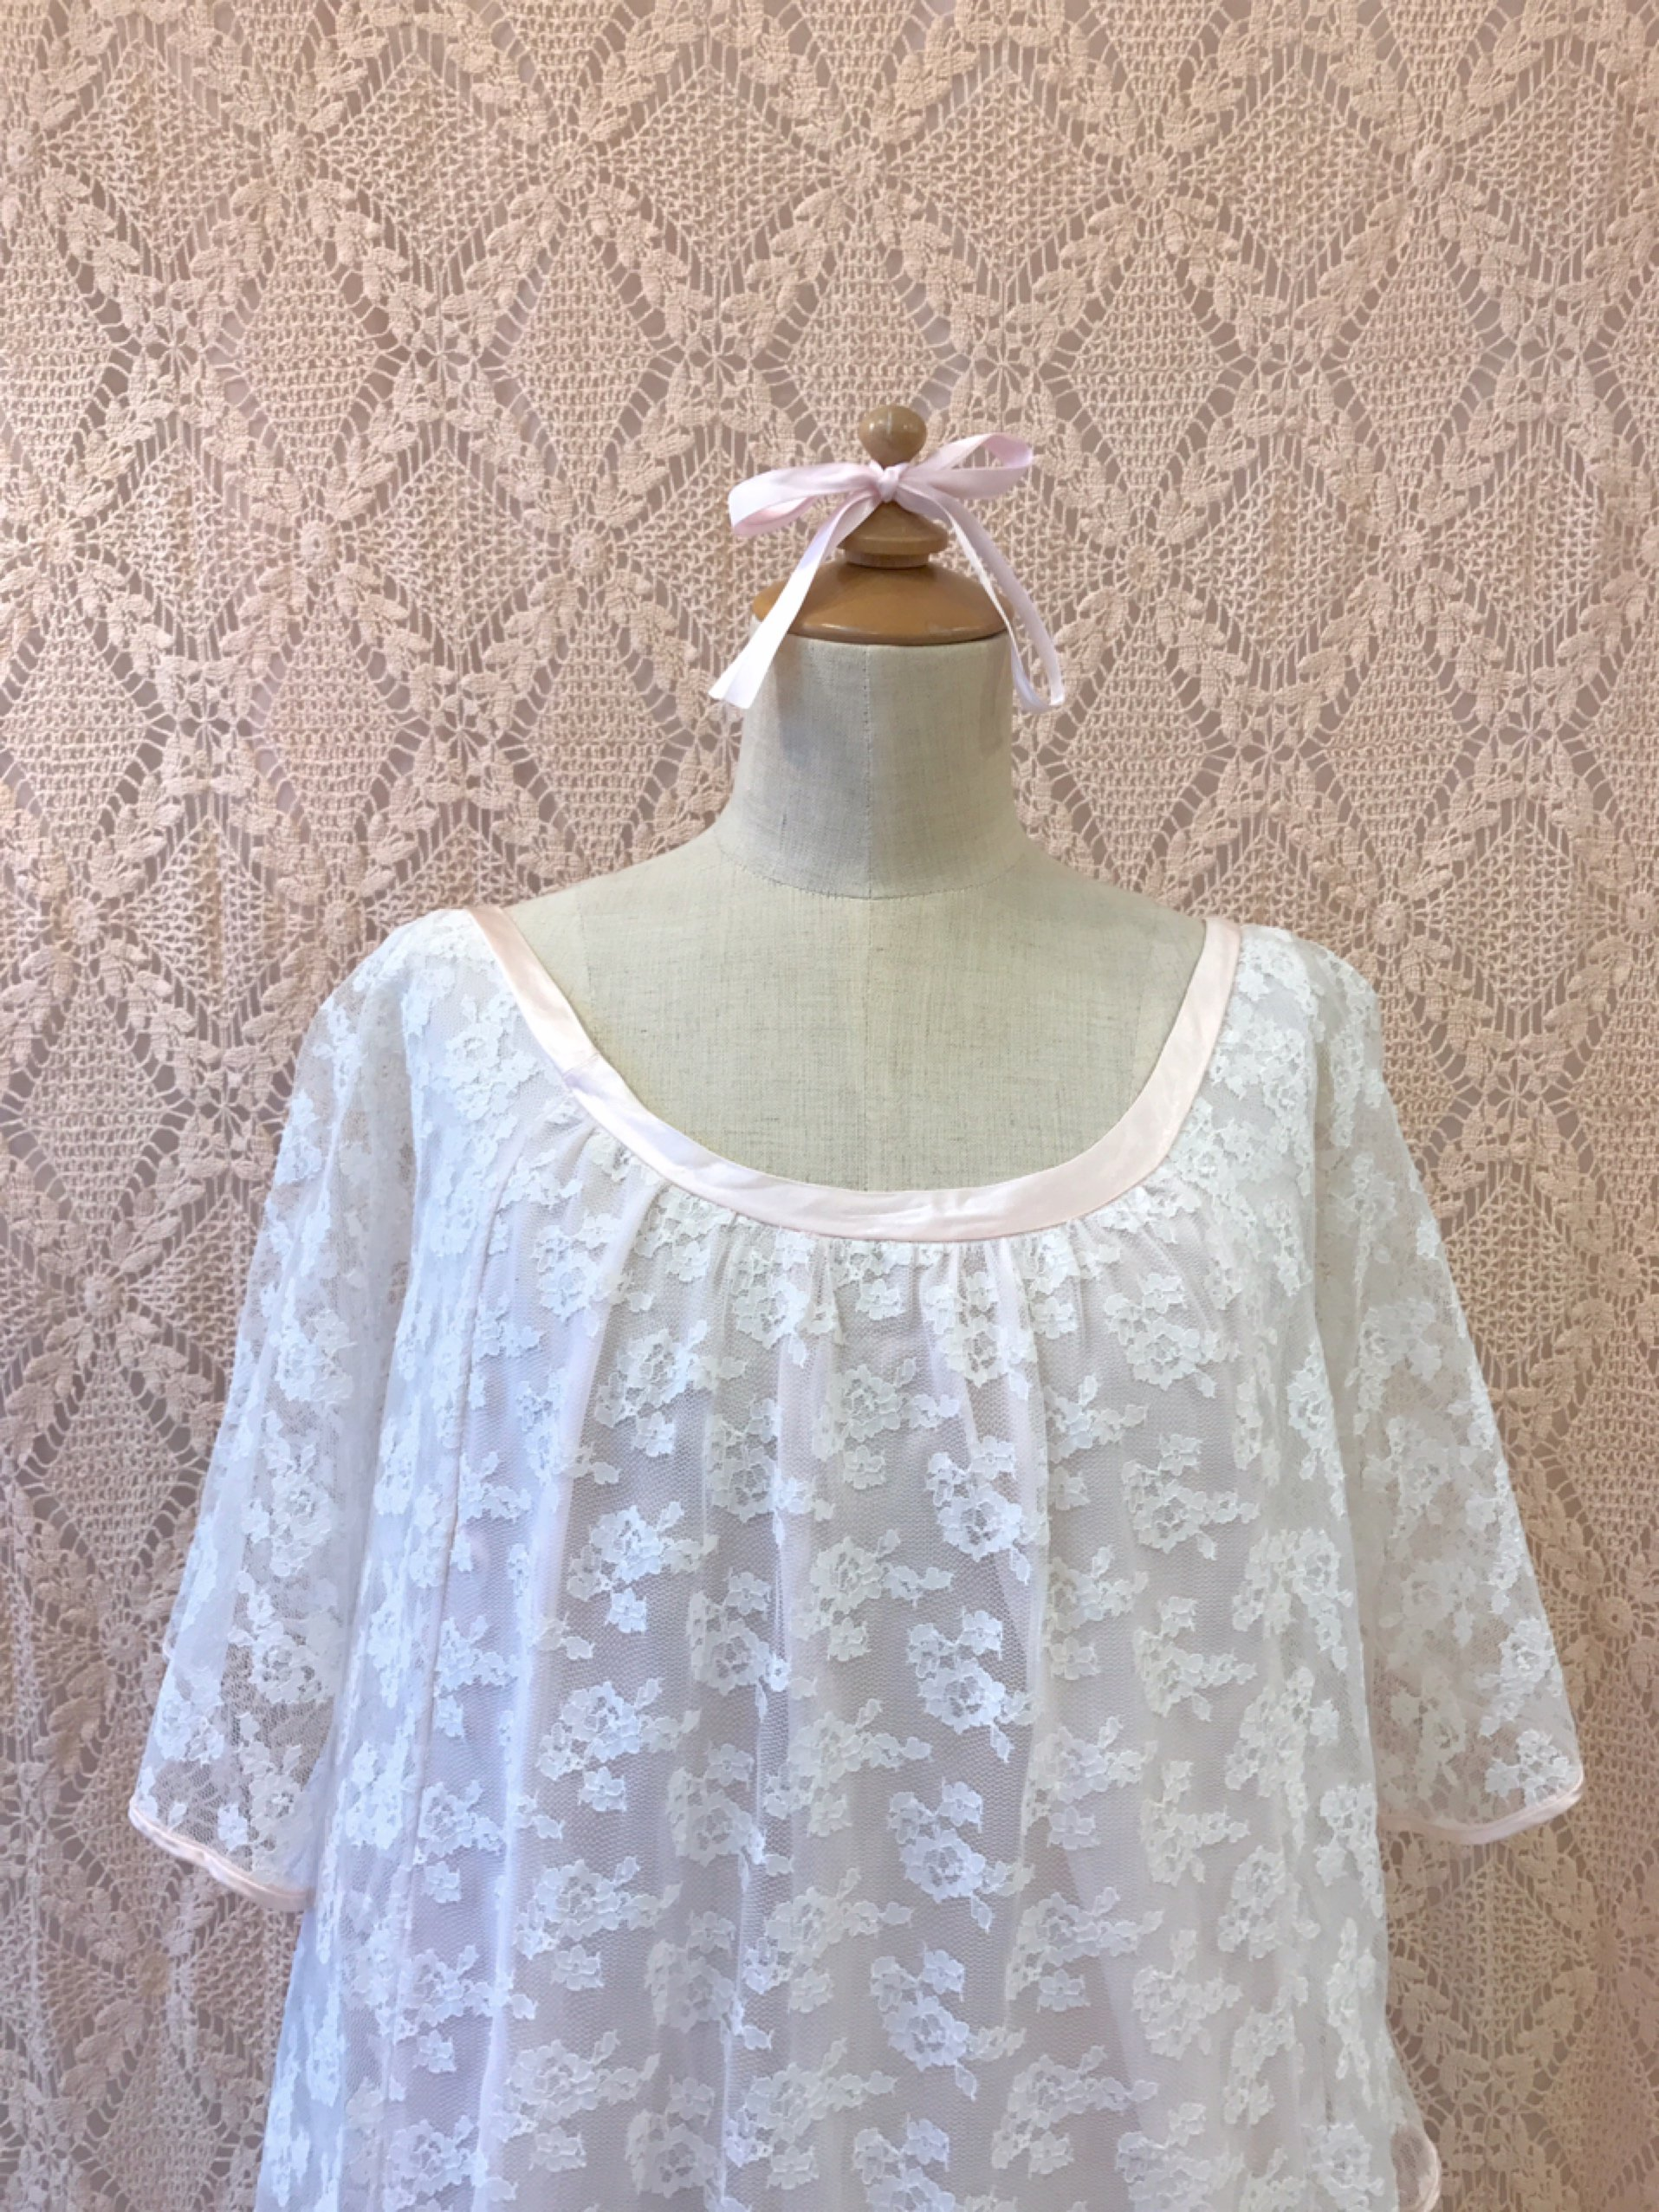 clione white lace pink onepiece